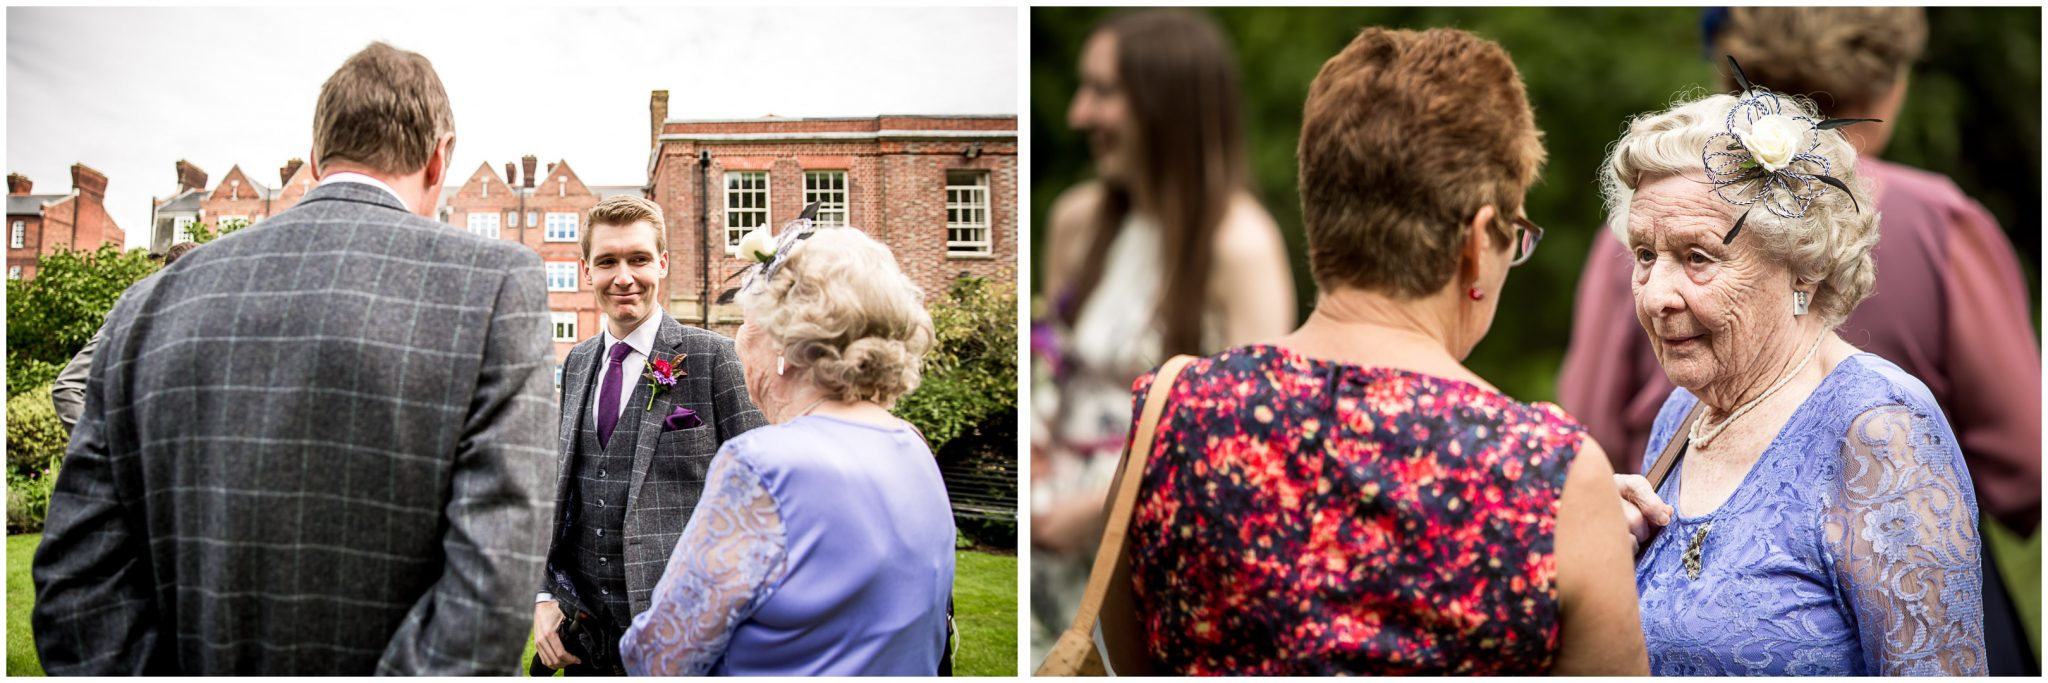 Portsmouth Registry Office wedding wedding guests in garden